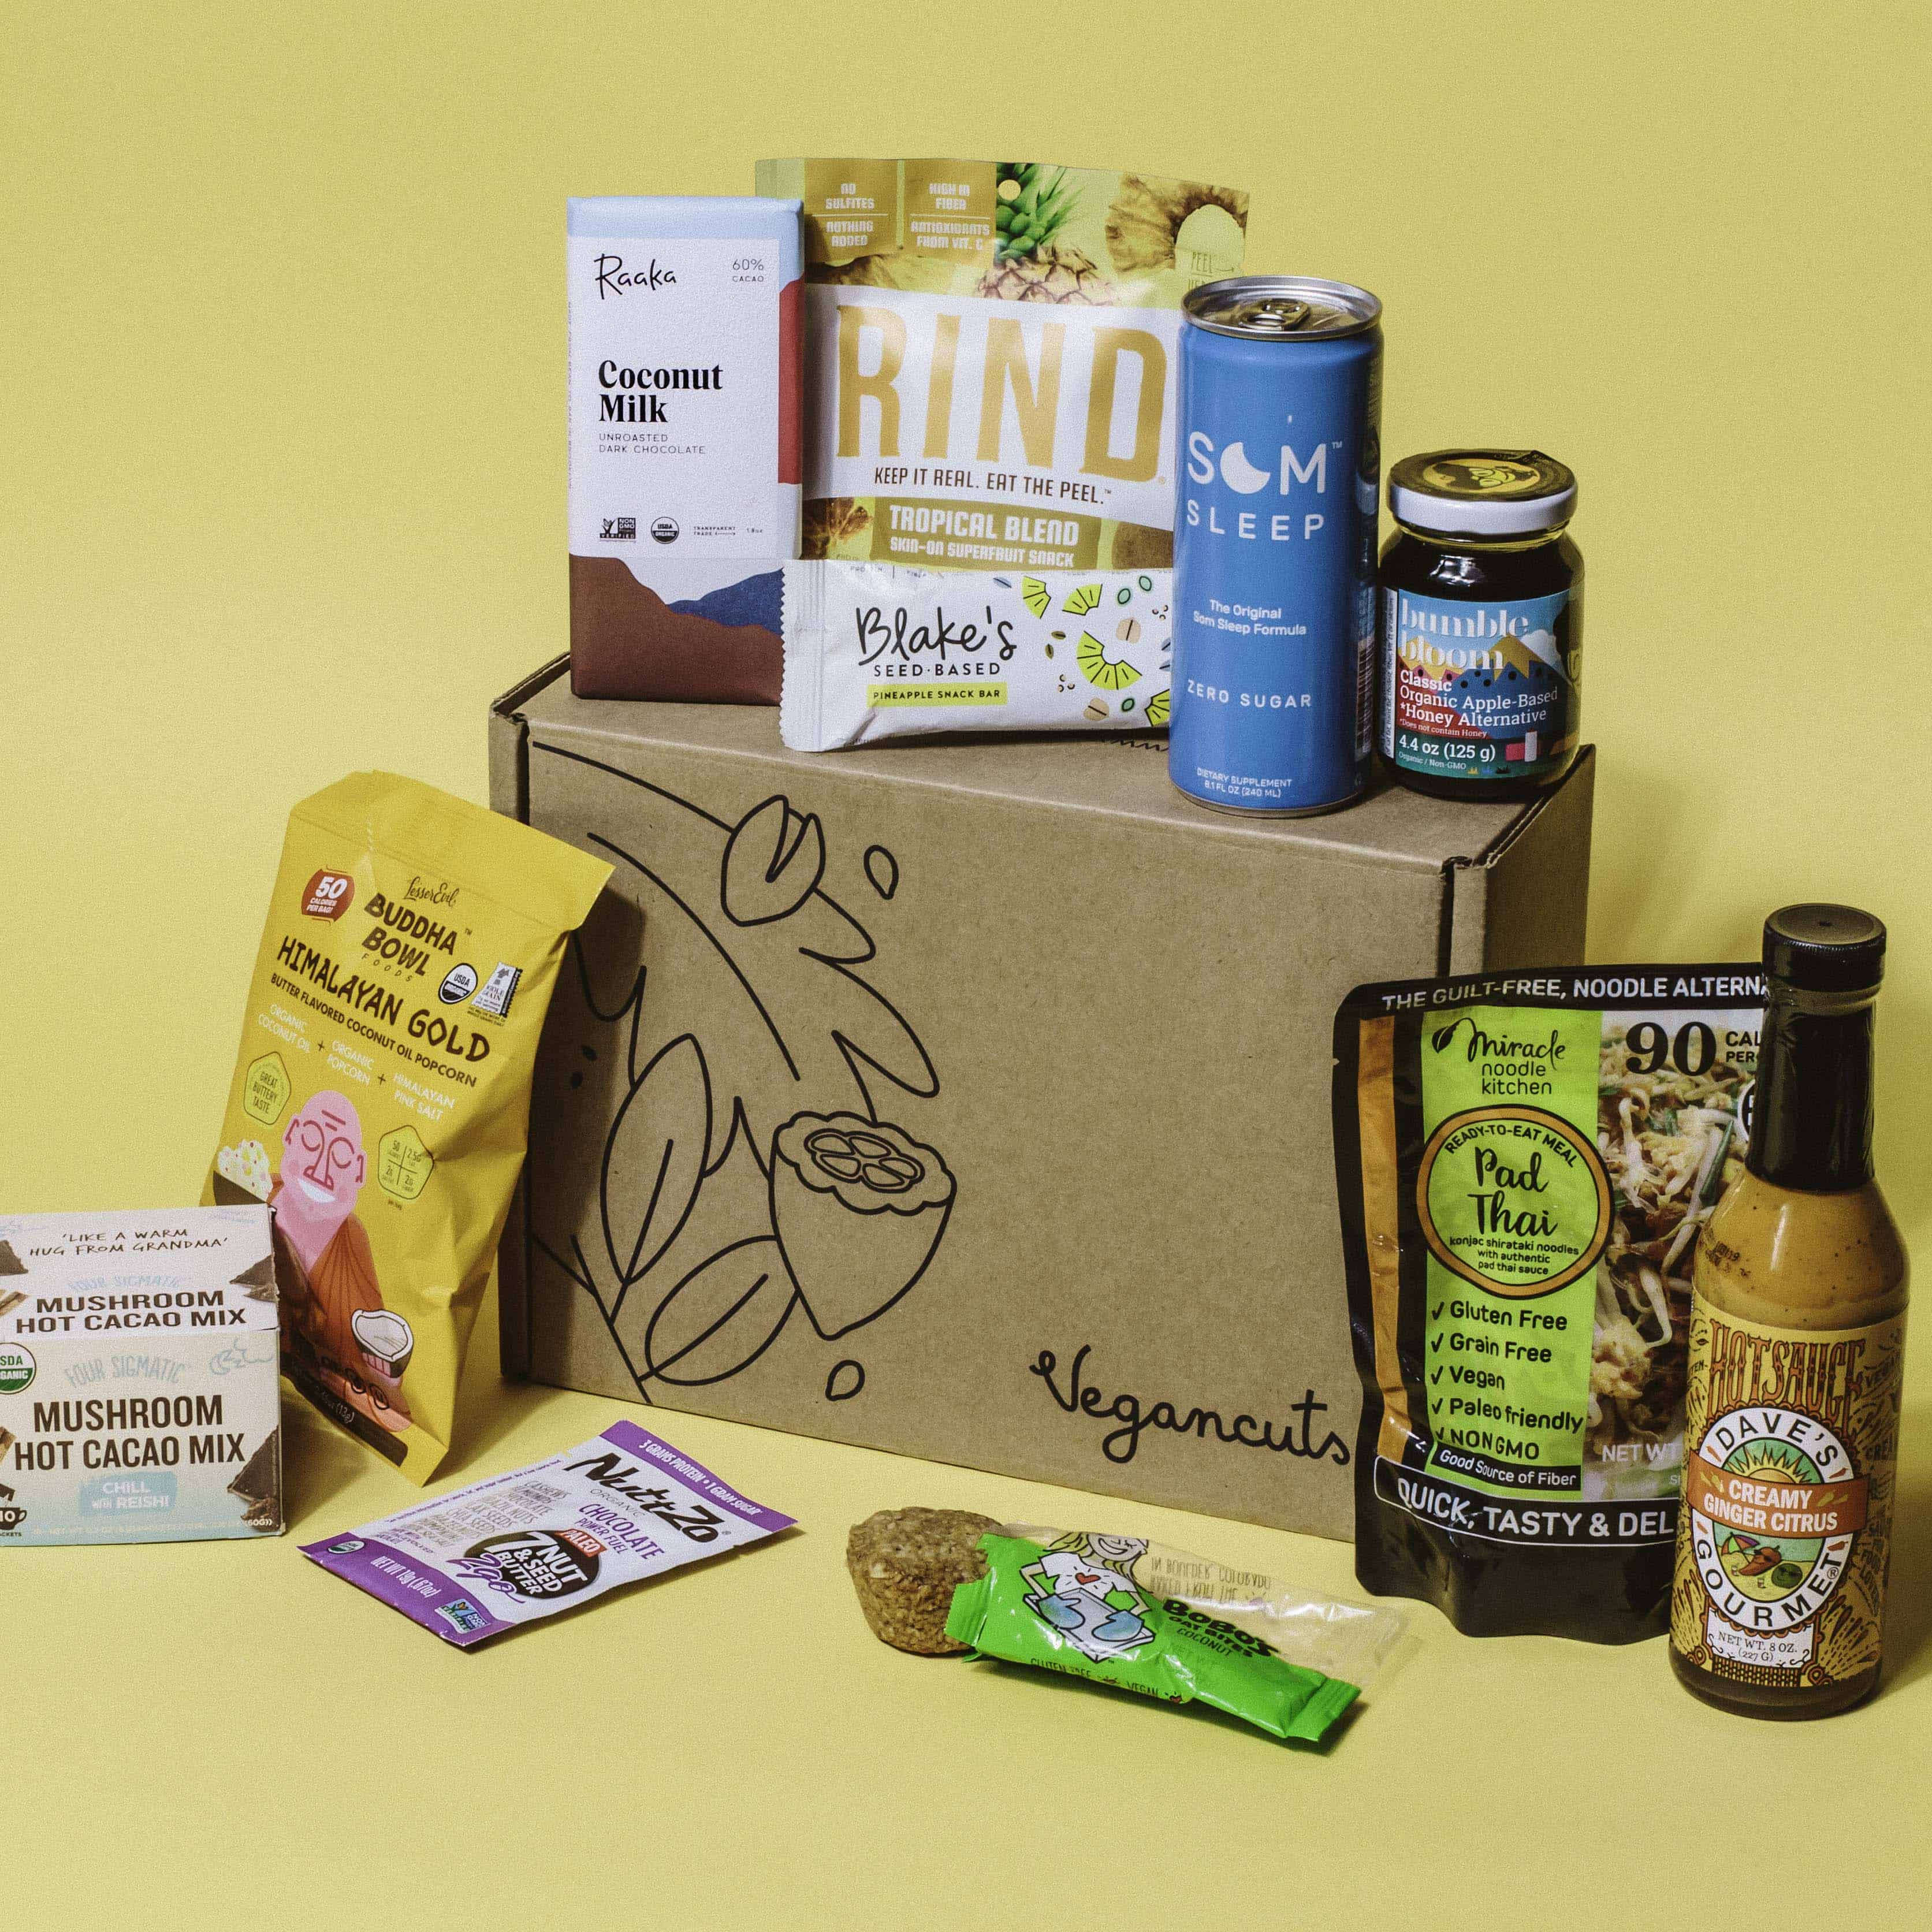 Vegancuts Snack Box